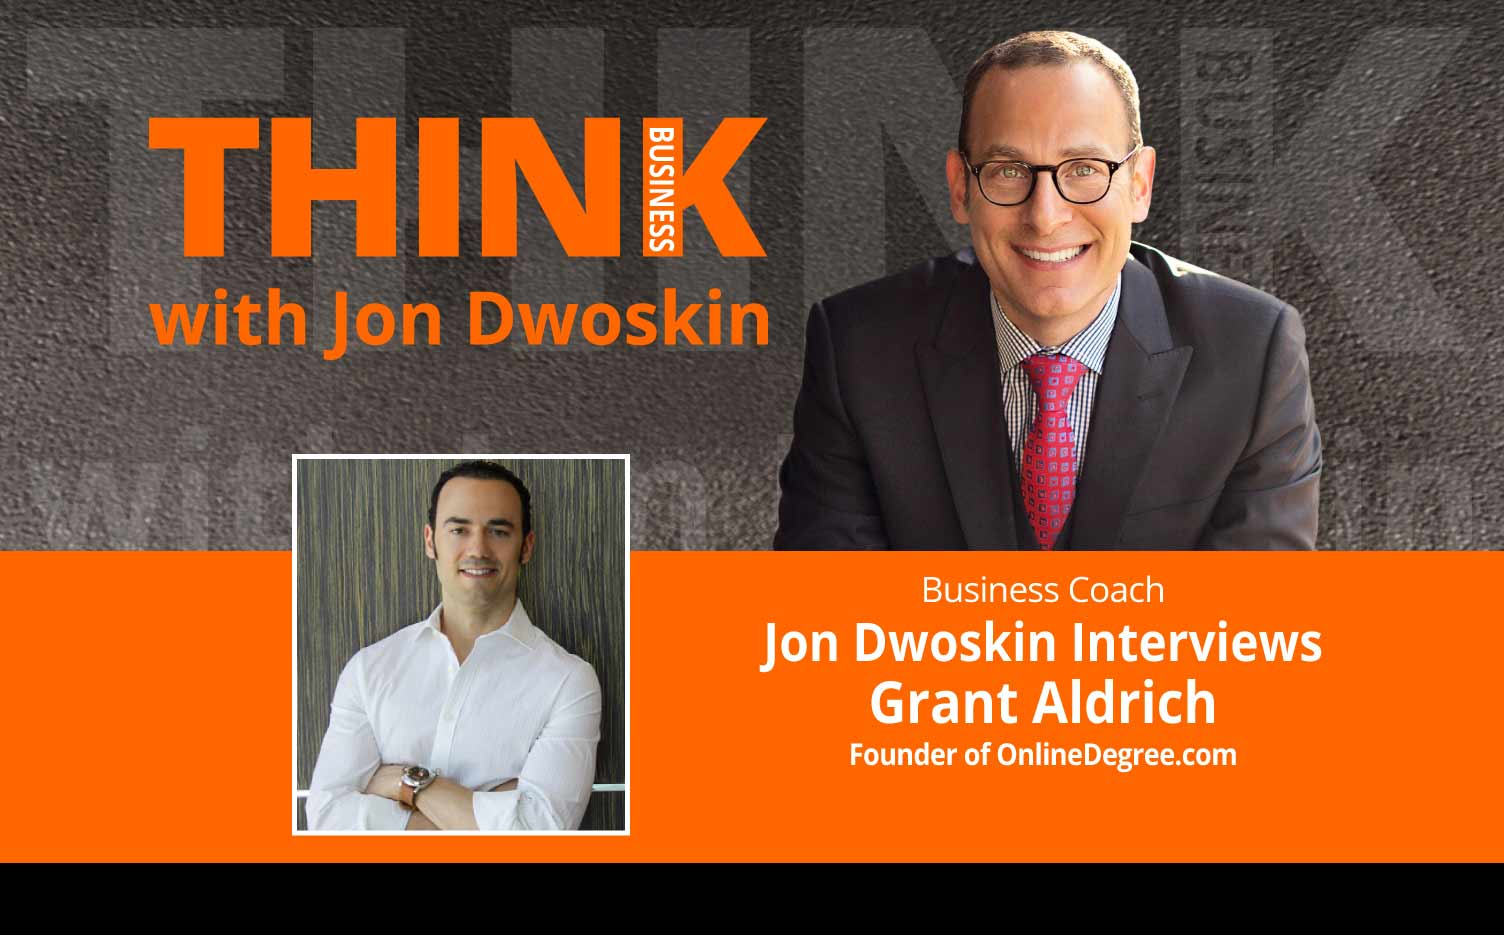 THINK Business Podcast: Jon Dwoskin Interviews Grant Aldrich, Founder of OnlineDegree.com